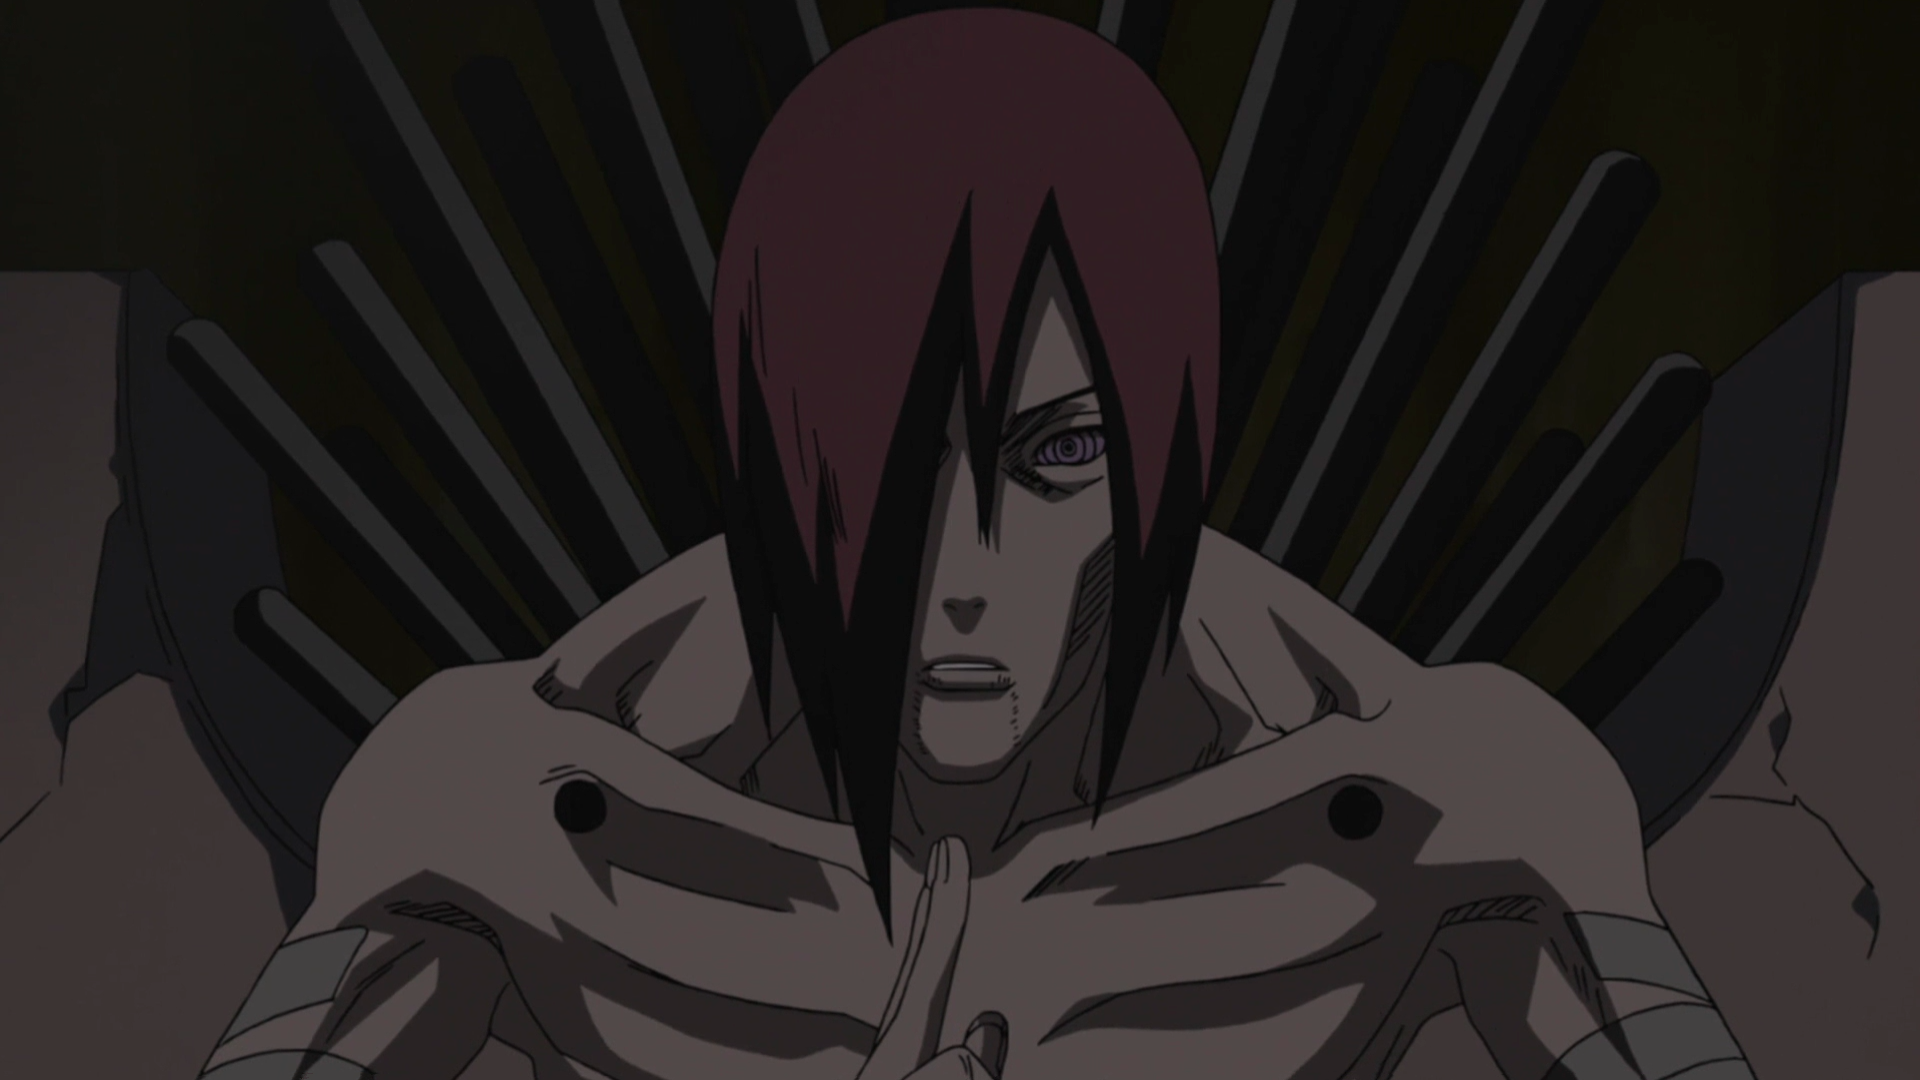 http://images.wikia.com/naruto/images/6/61/Outer_Path_Nagato.png